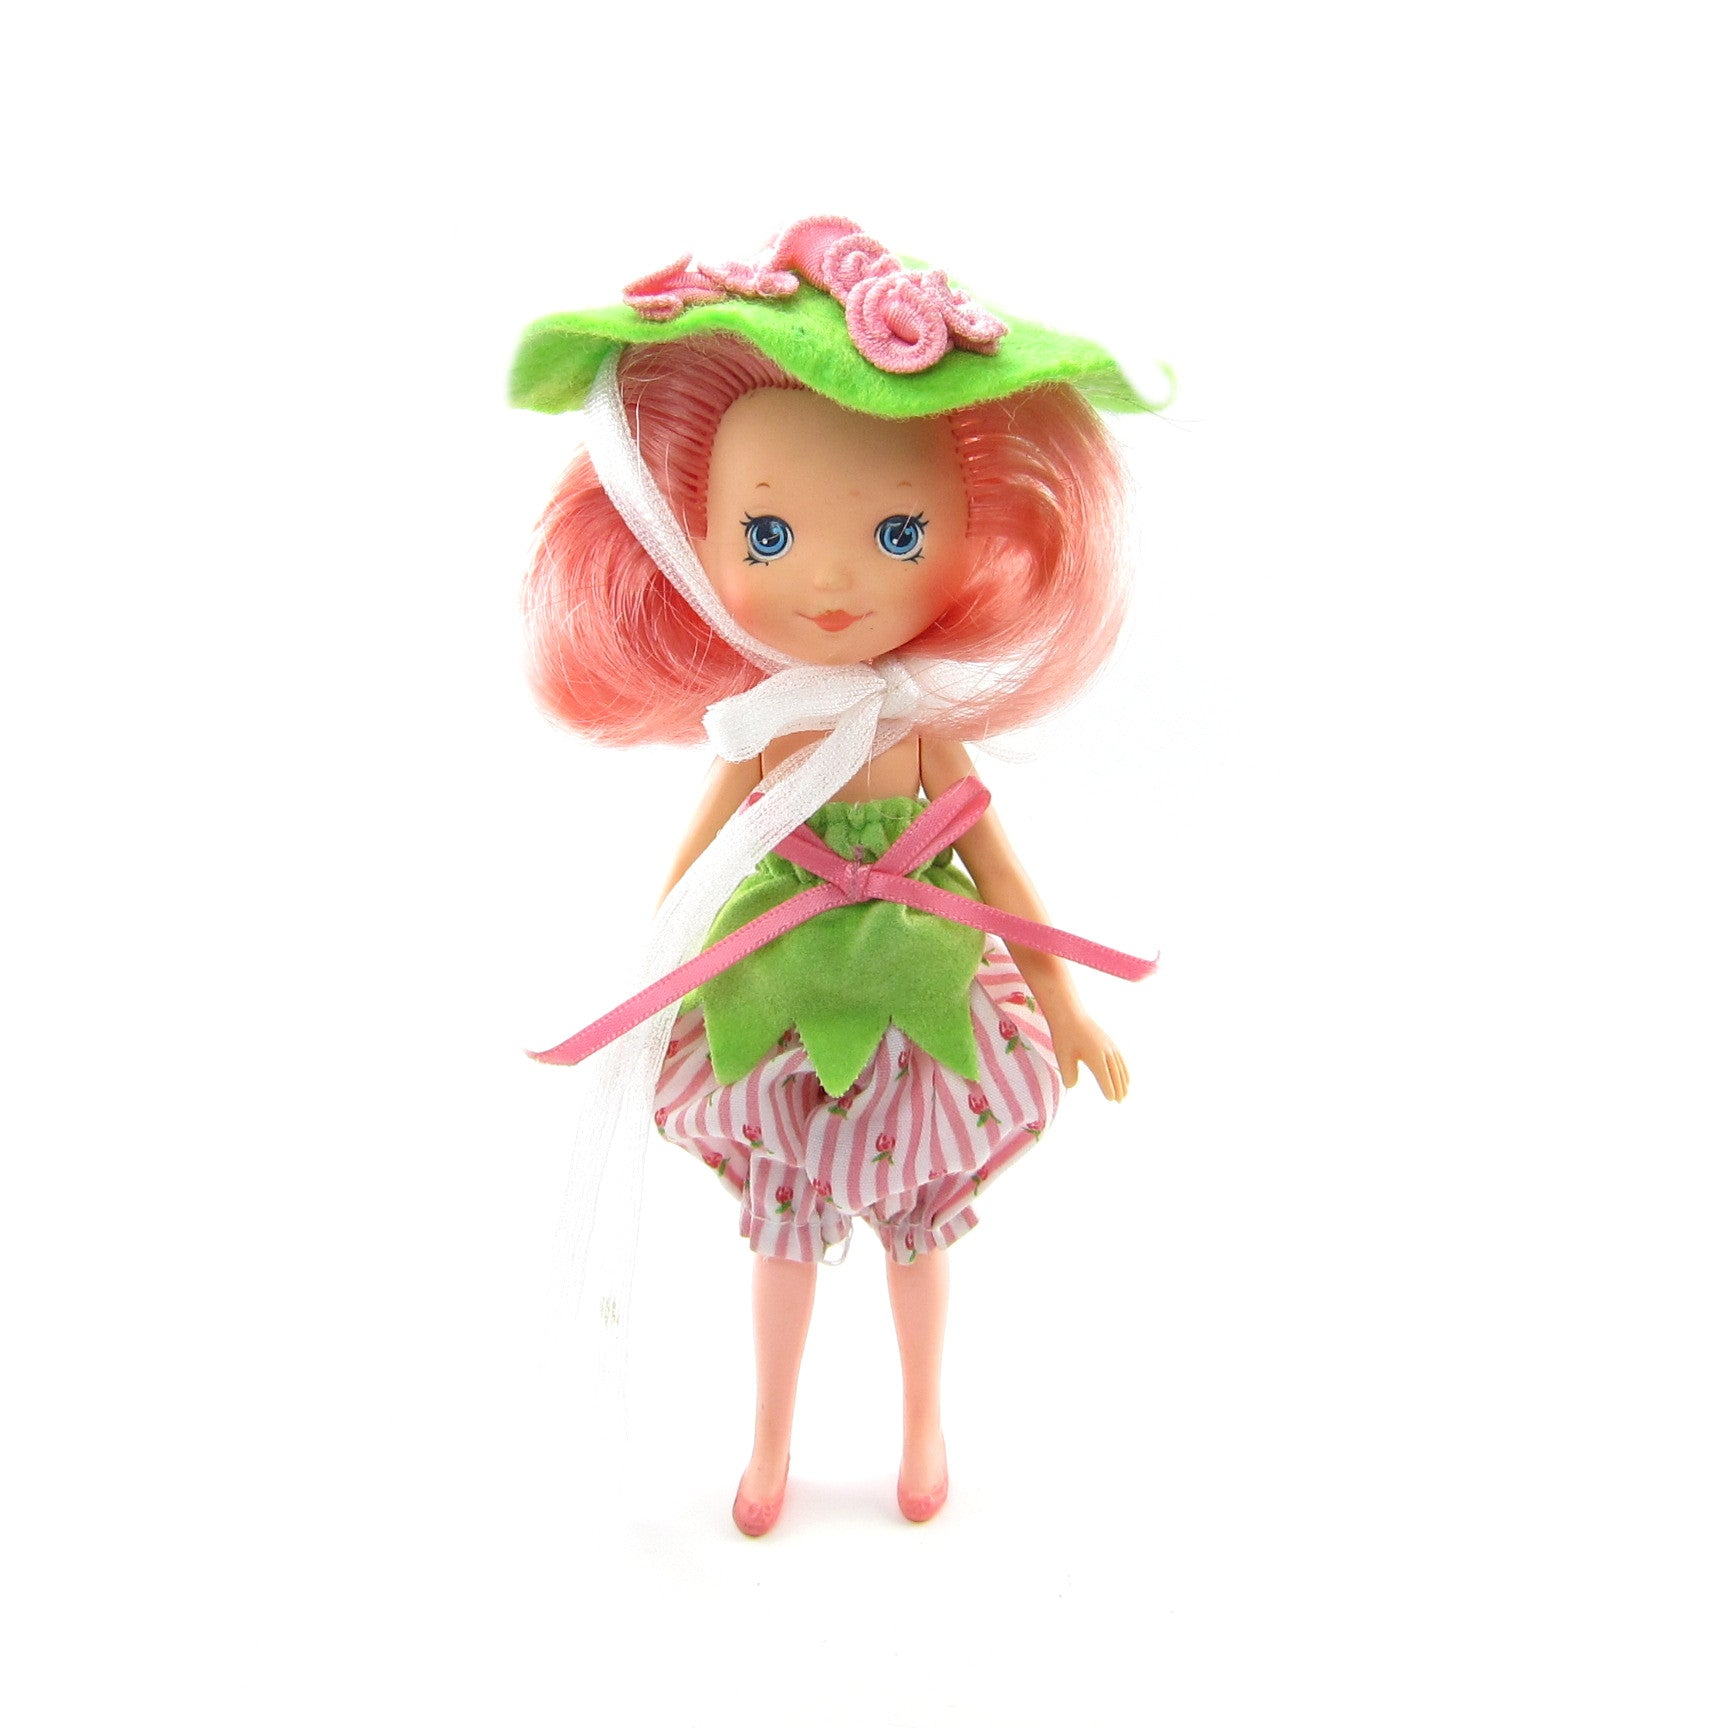 Rose Petal Place Petal Pushers Doll Fashions